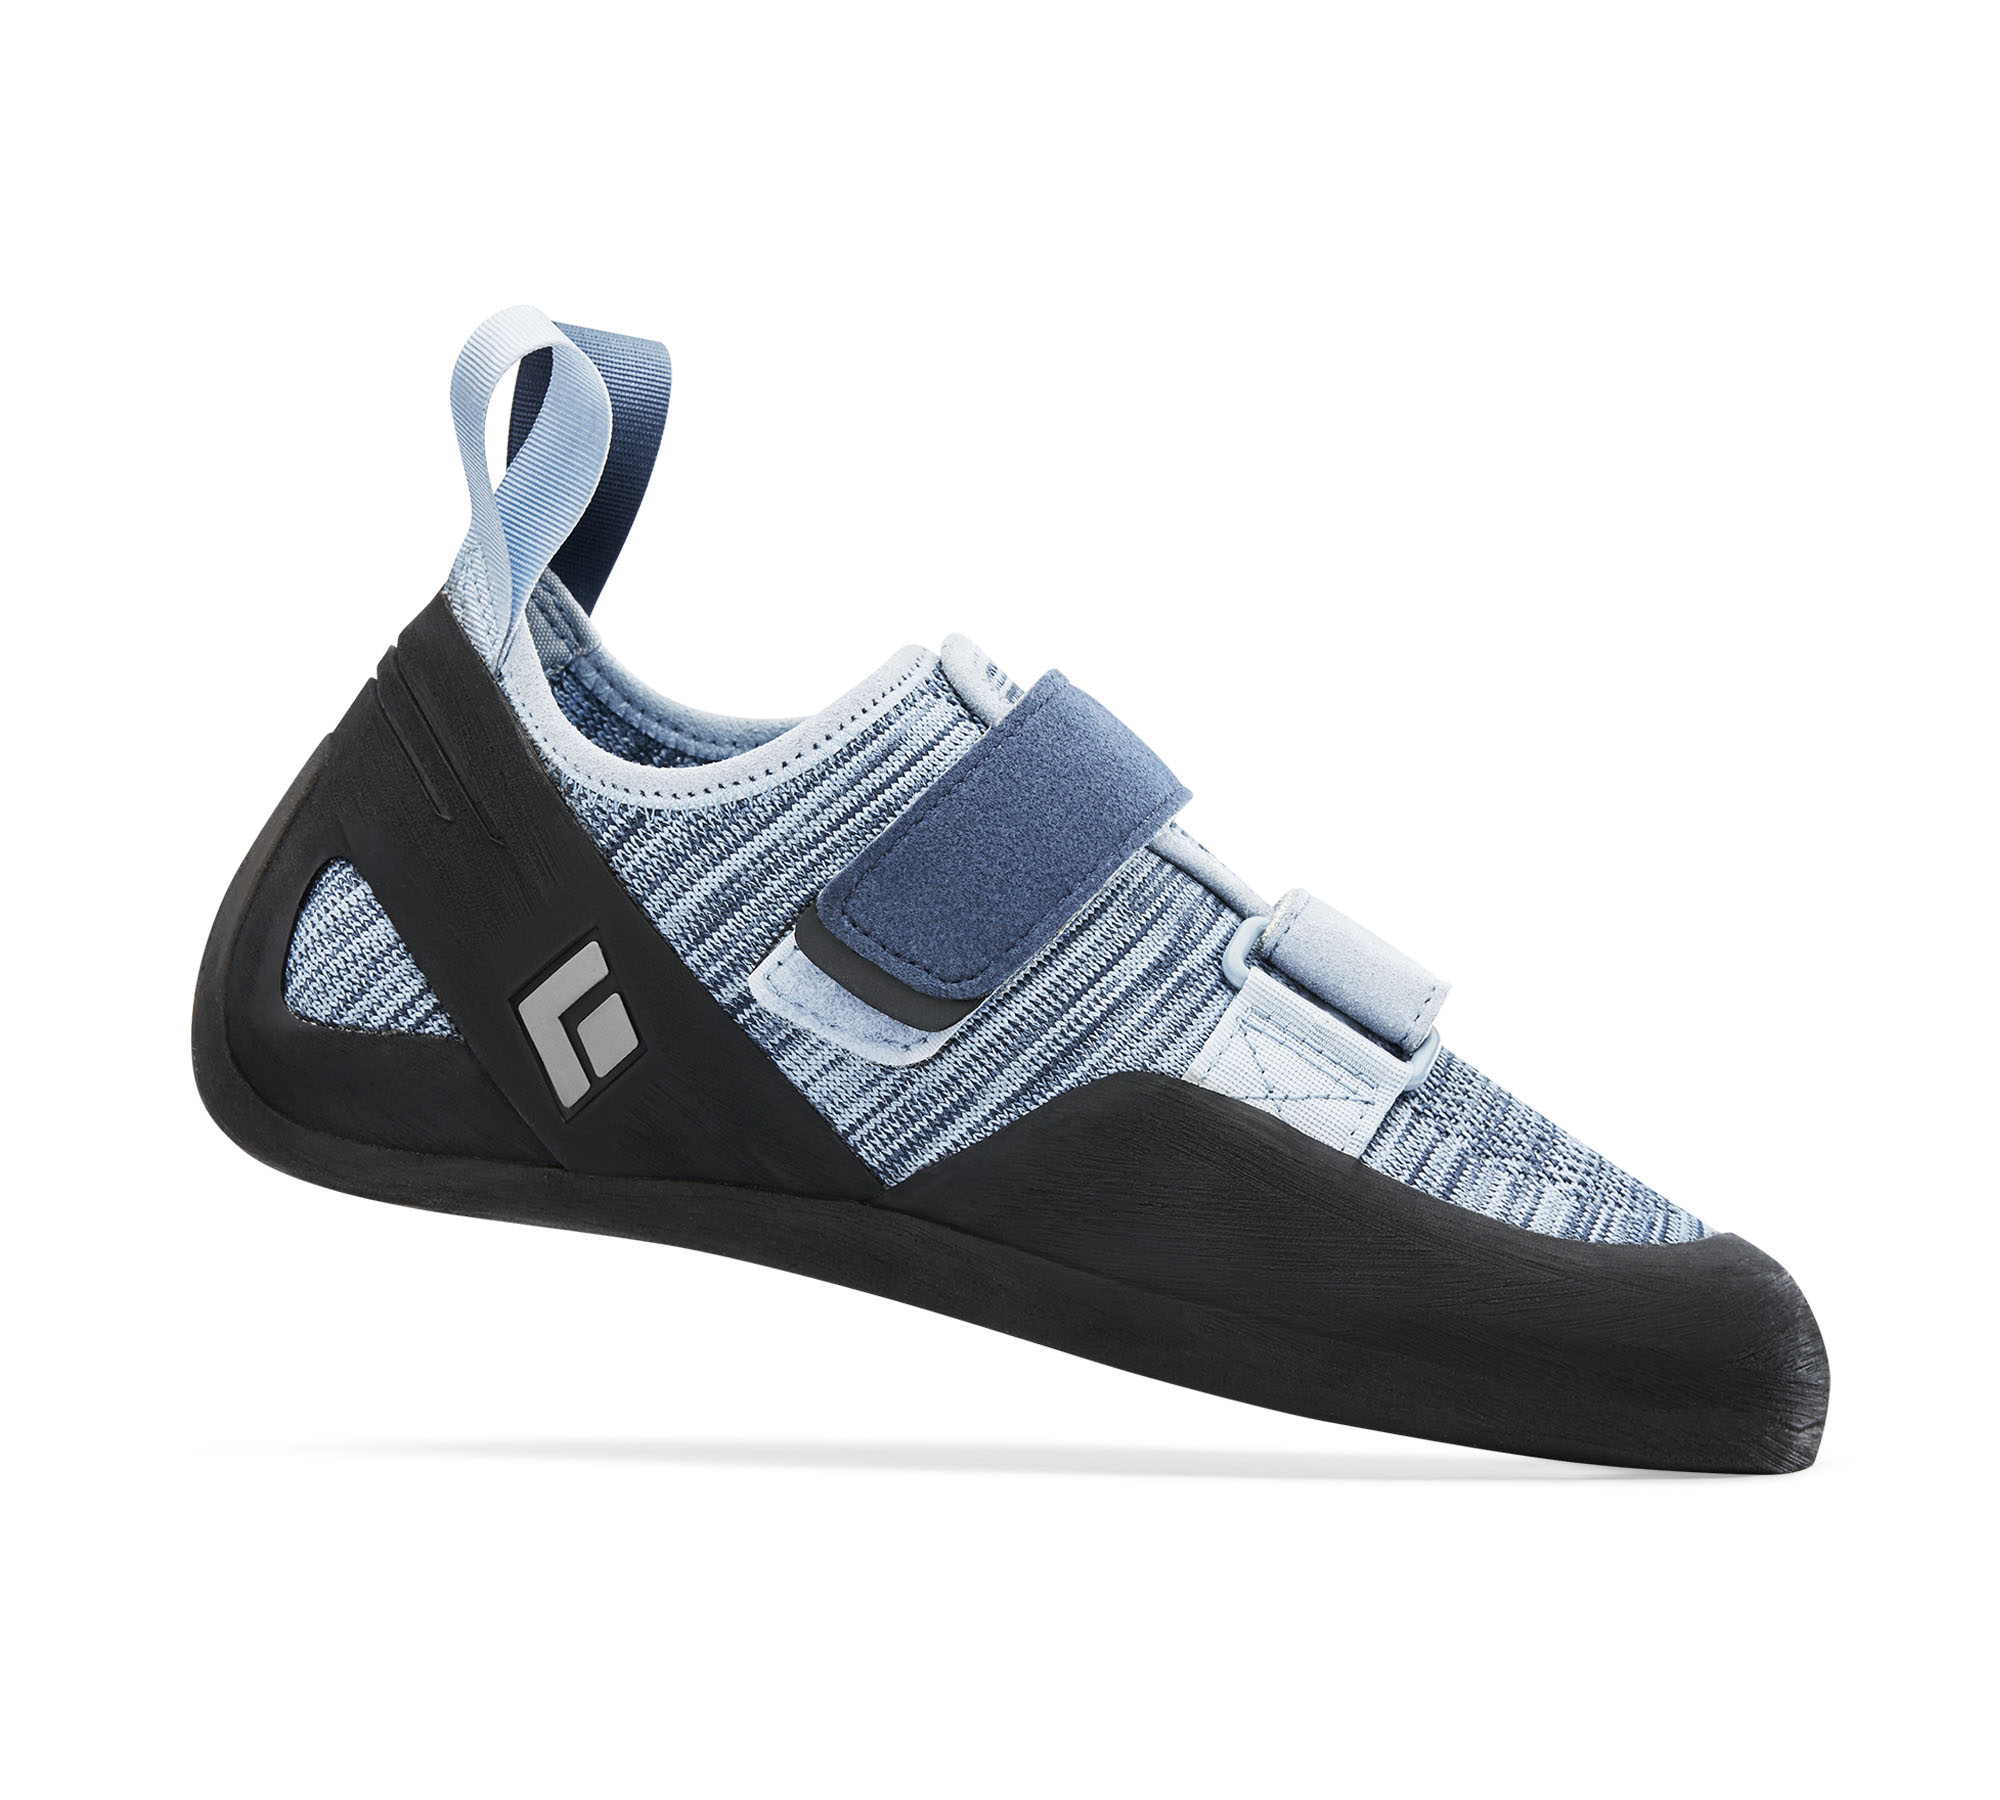 MOMENTUM Velcro CLIMBING SHOES - WOMEN'S